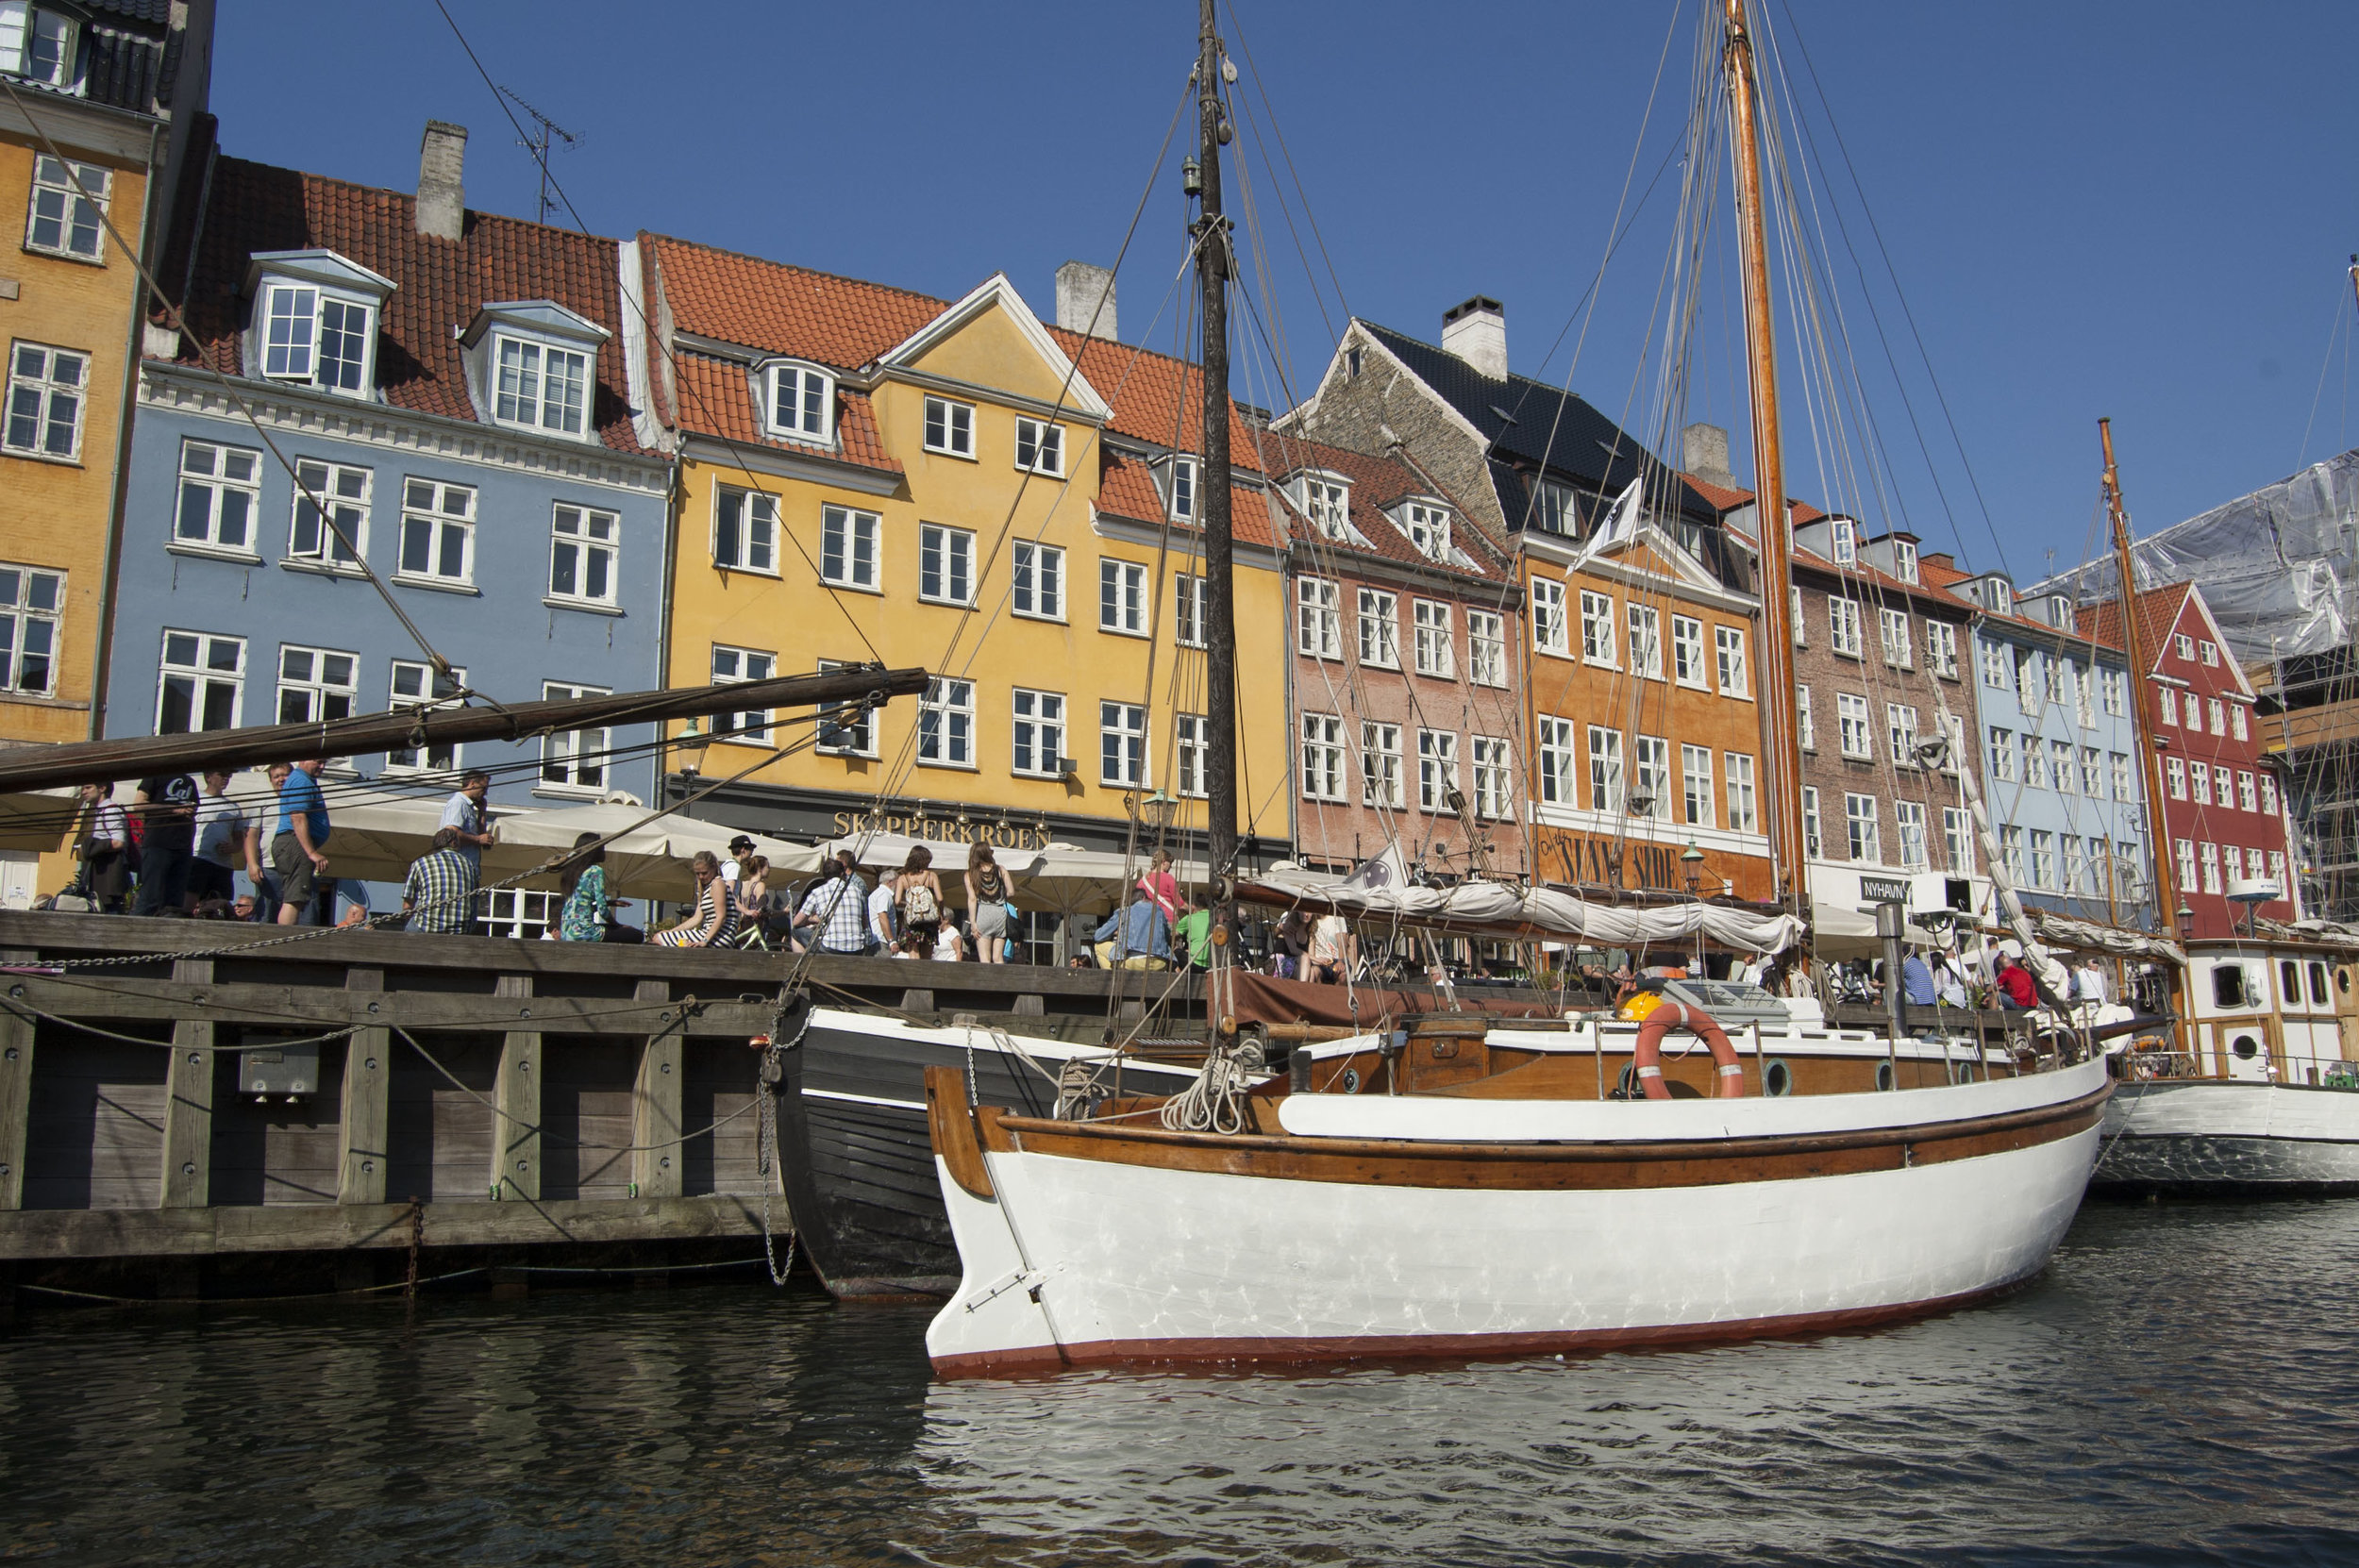 Denmark  is dreamy. We traversed Copenhagen's busy canals and reveled at Tivoli Gardens amusement park. The countryside's vast palaces left us awestruck.  Read more...